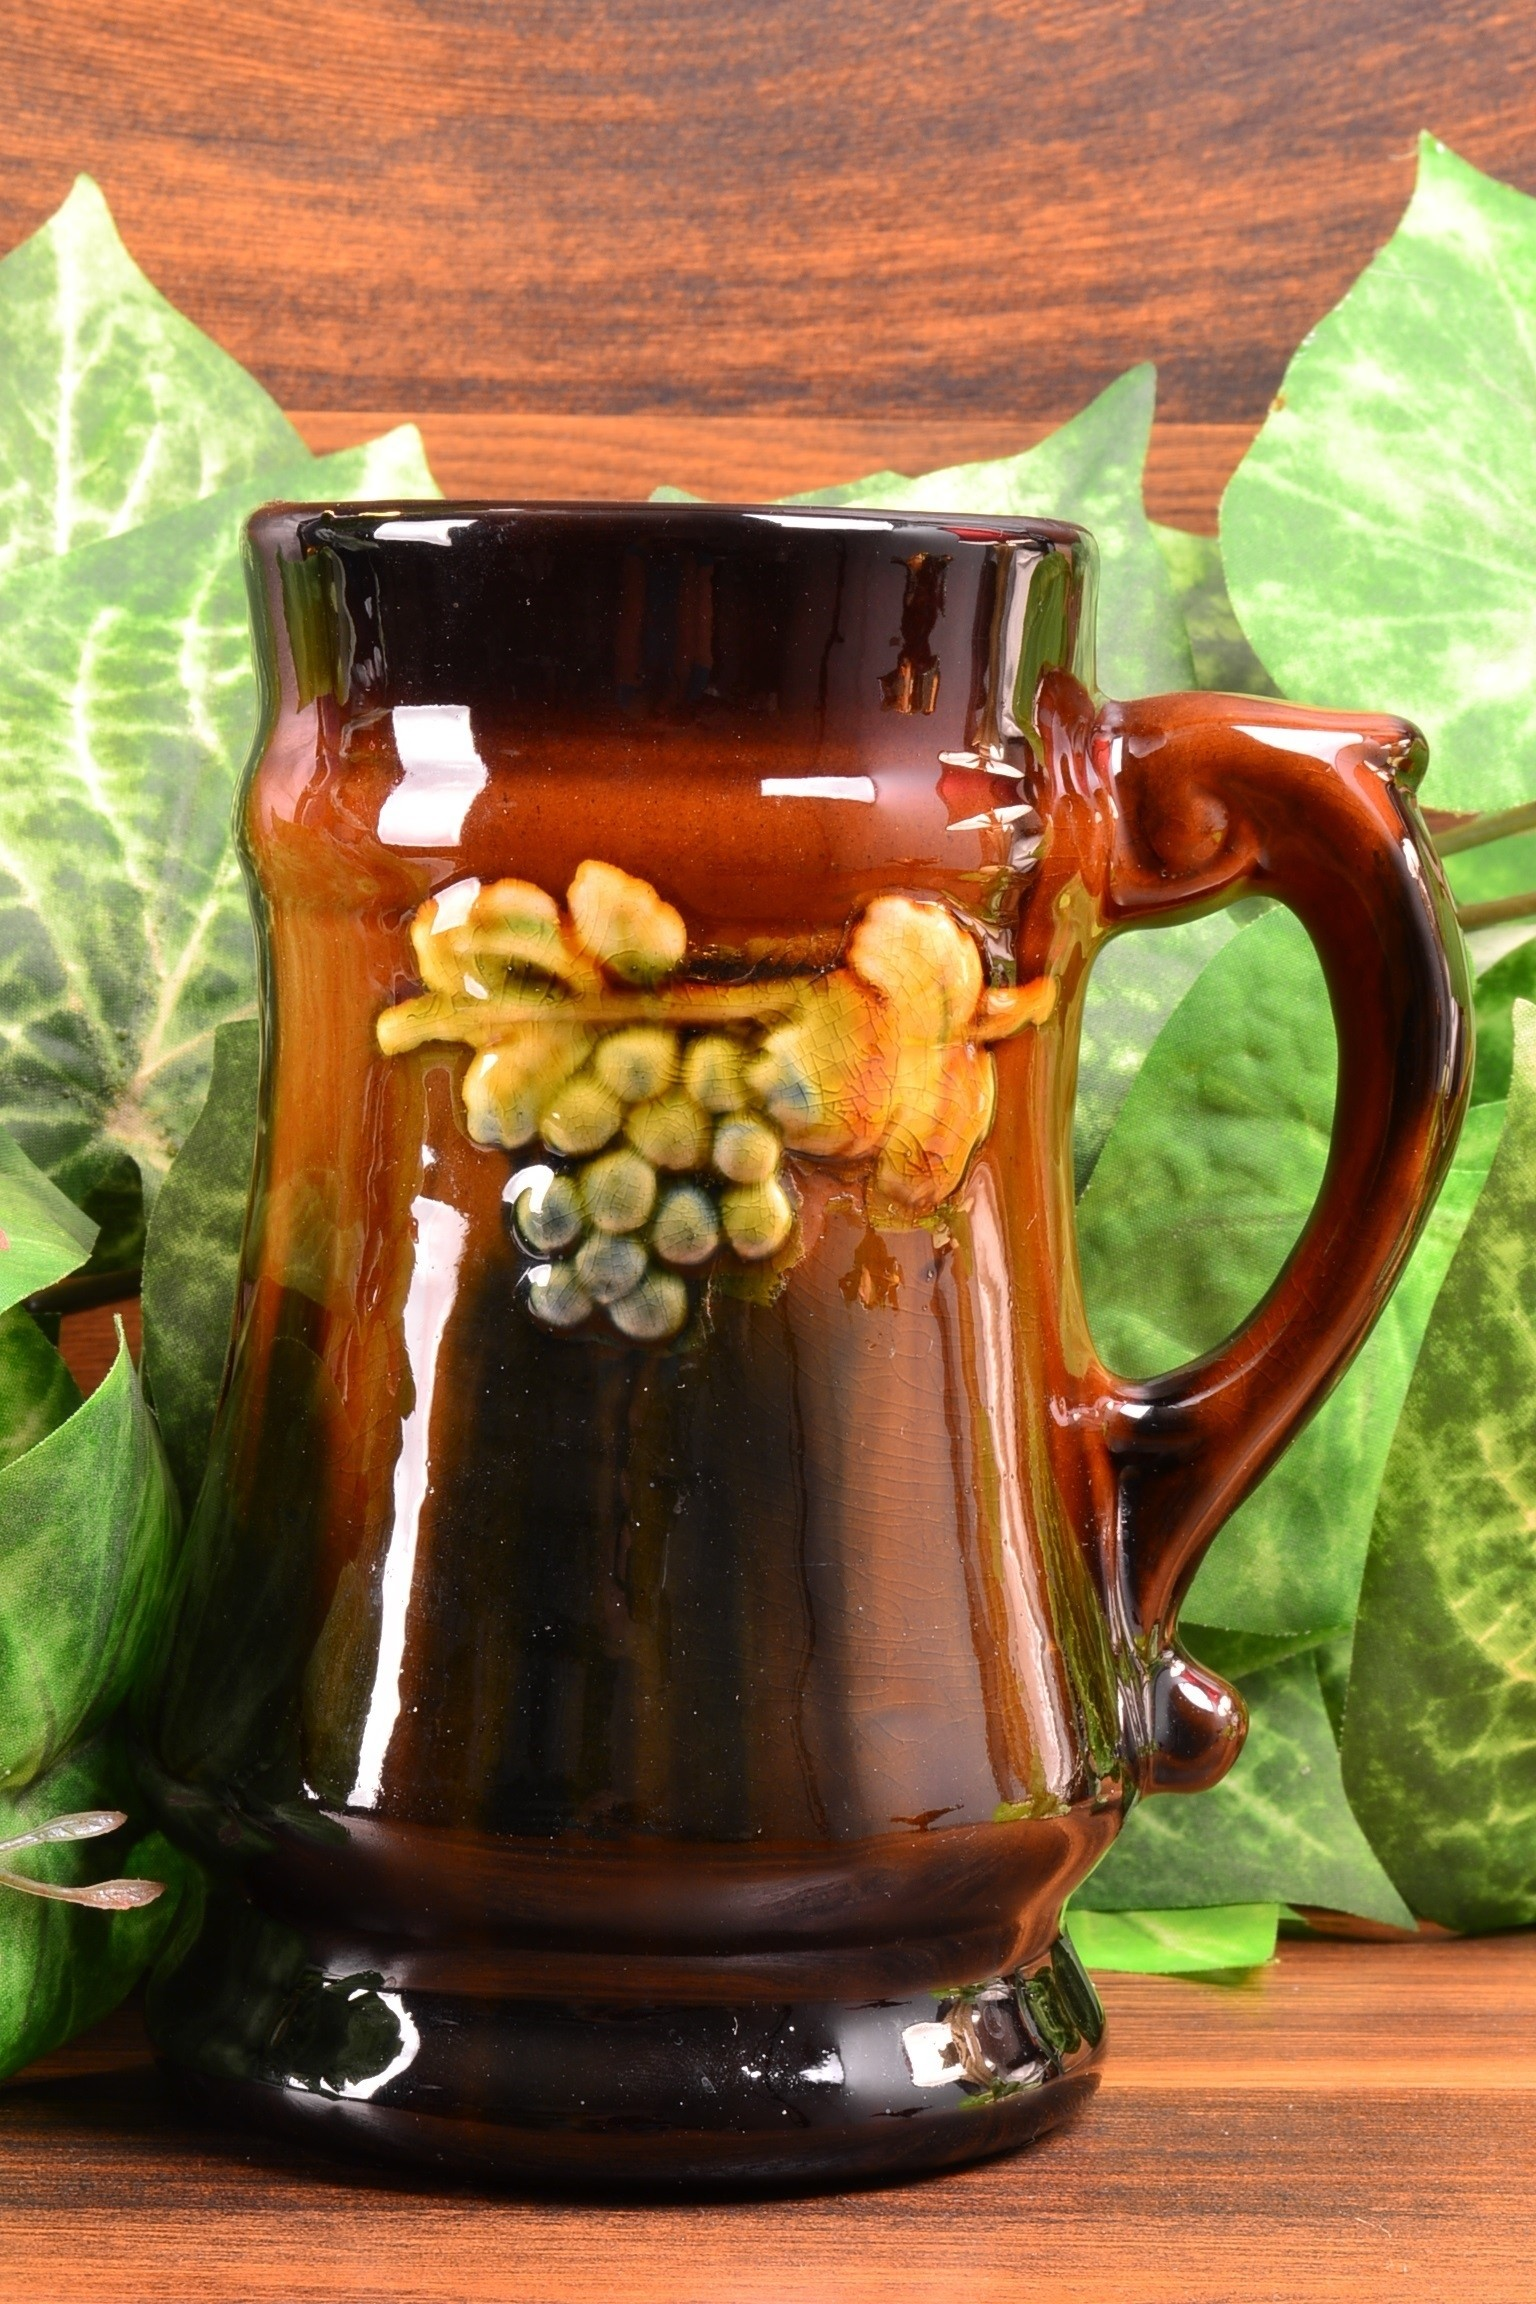 Weller Pottery Standard Ware Glaze Grapes and Leaves Mug